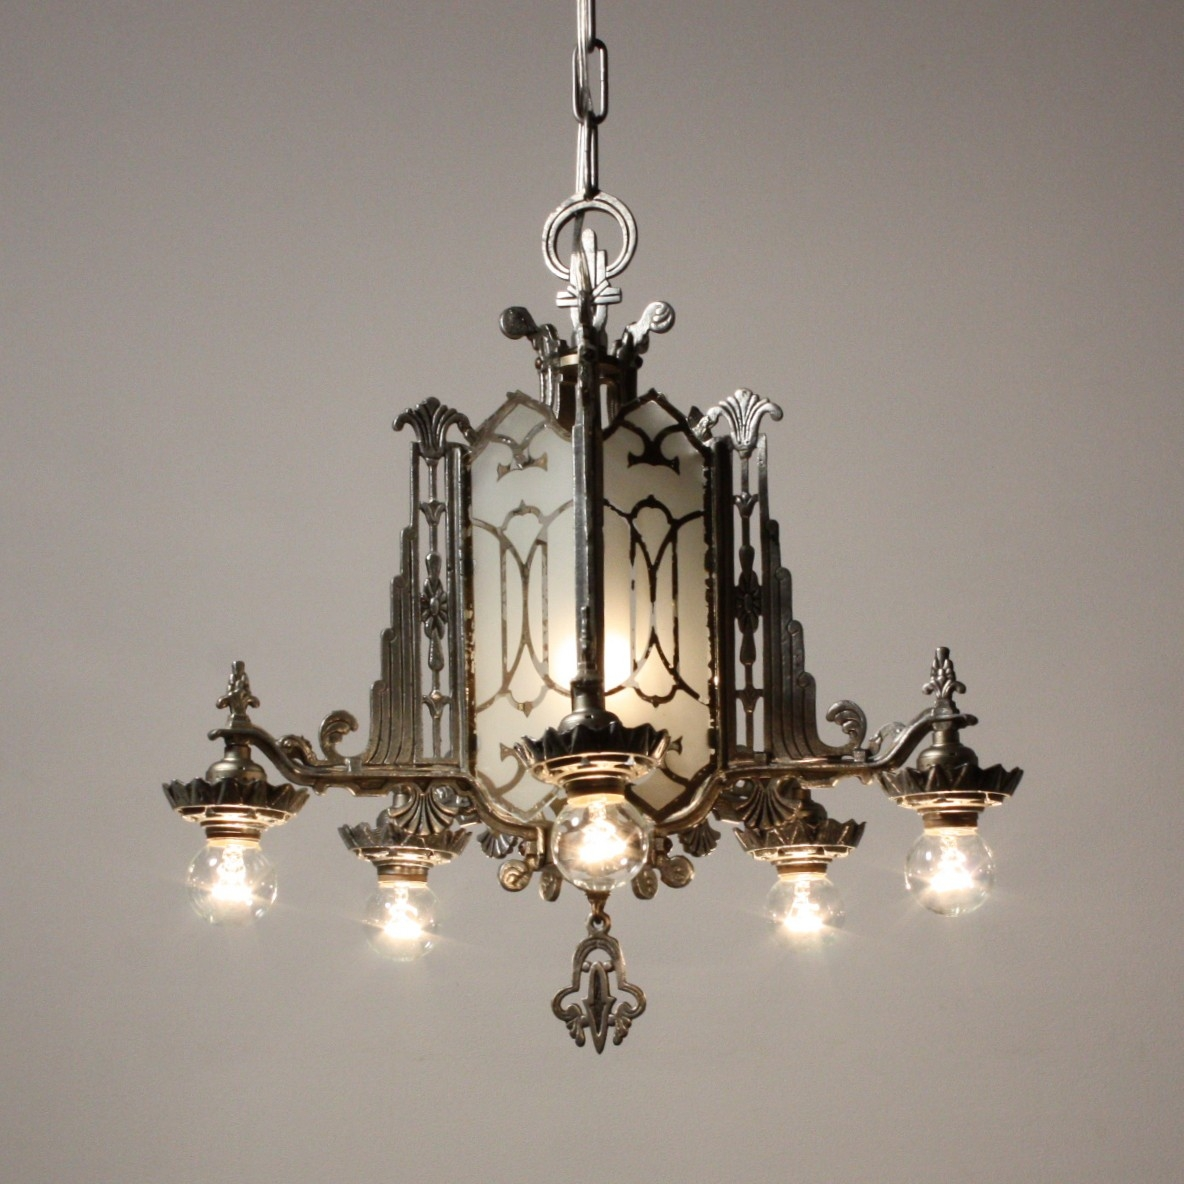 Magnificent Antique Art Deco Chandelier Mirrored And Etched Glass Throughout Mirrored Chandelier (Image 9 of 15)